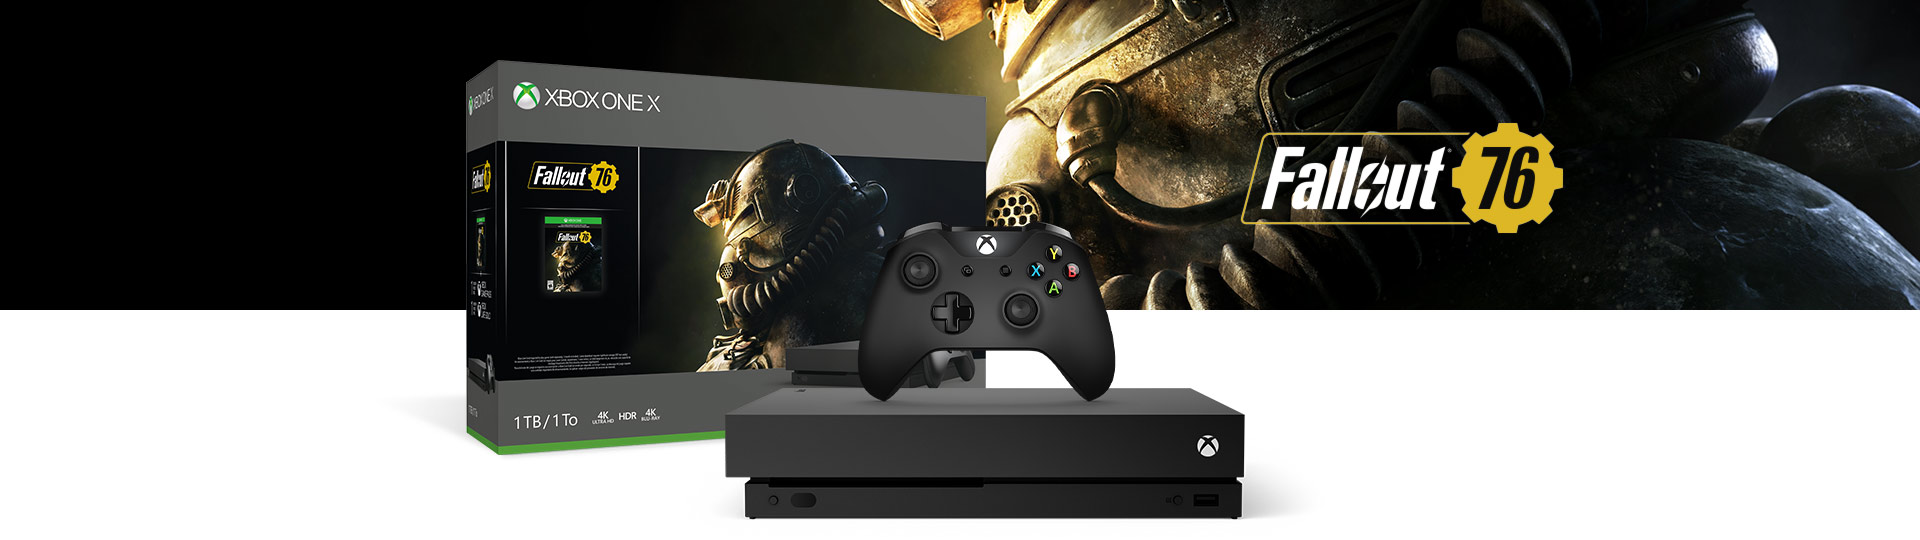 Xbox One X and Controller next to the Xbox One X Fallout 76 1 terabyte product box